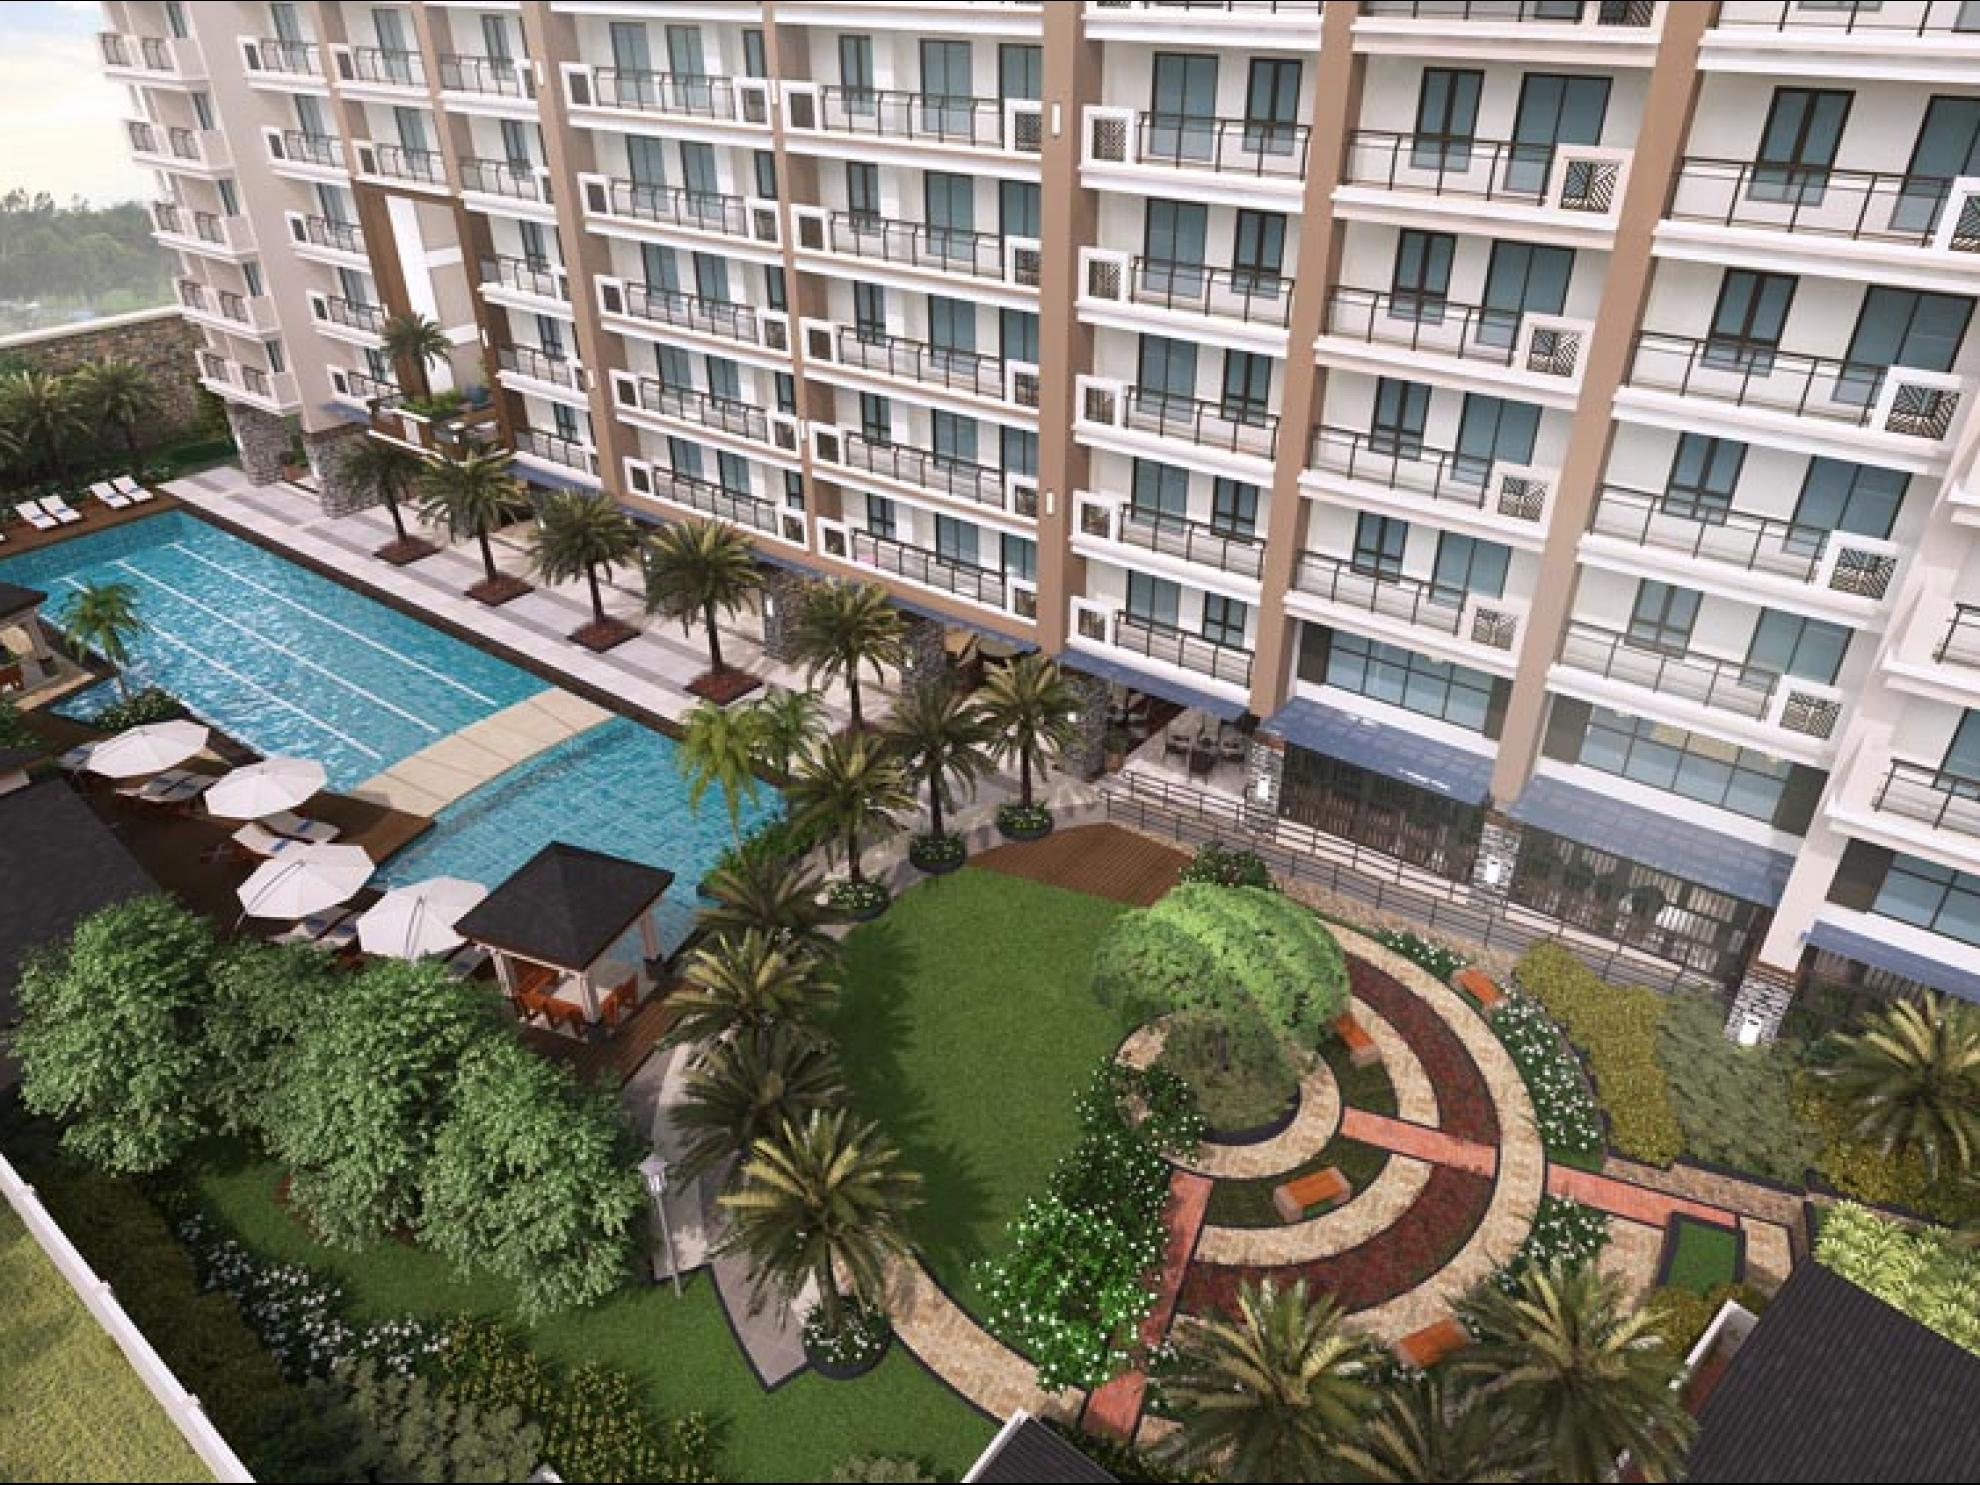 DMCI Homes' Fairway Terraces on track for completion early next year